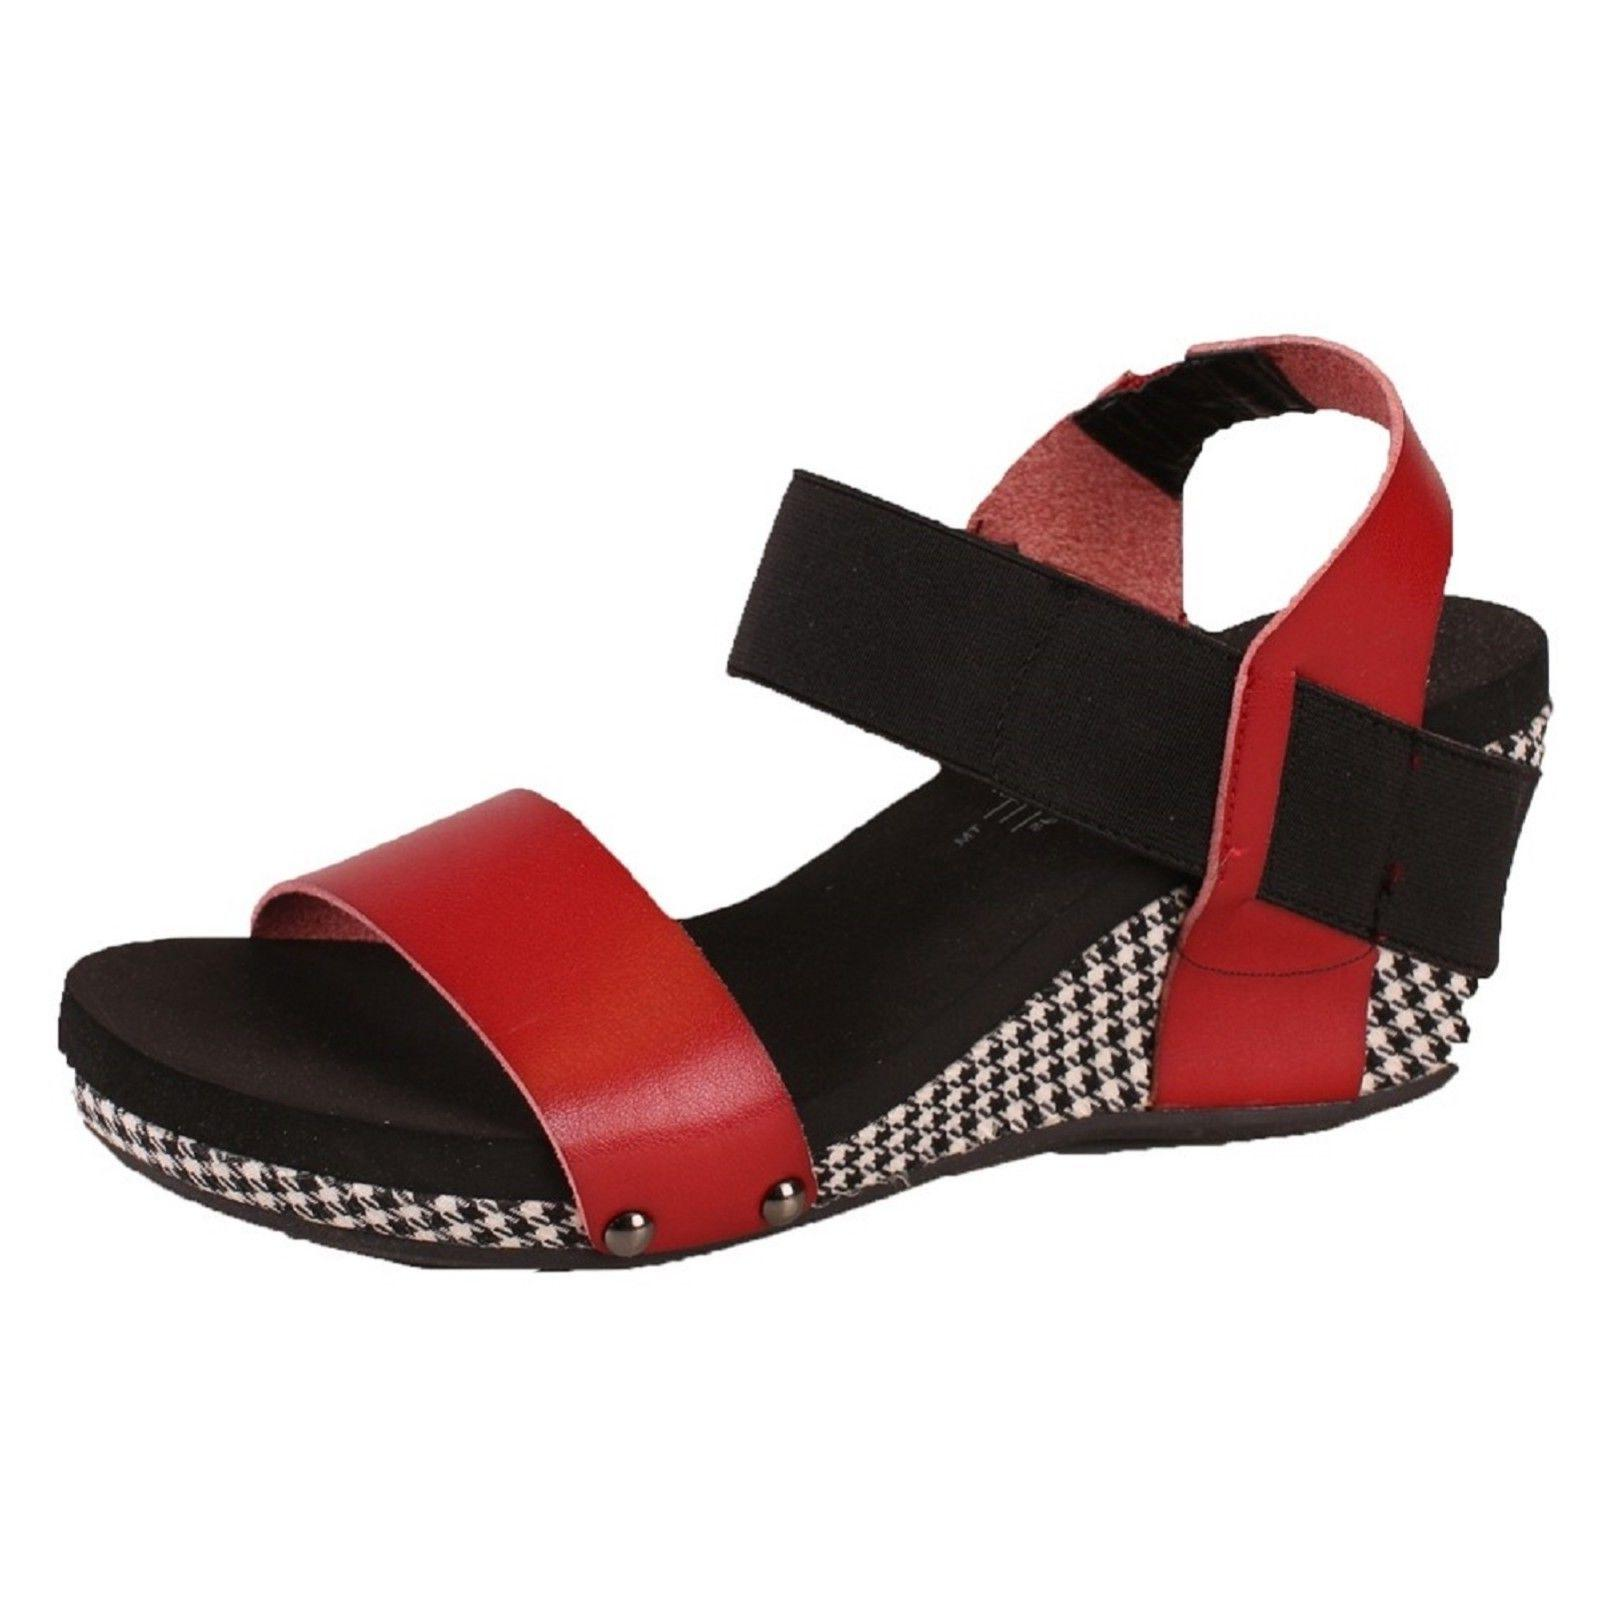 Women's Corkys Boutique BANDIT Houndstooth Wedge Sandal Shoe